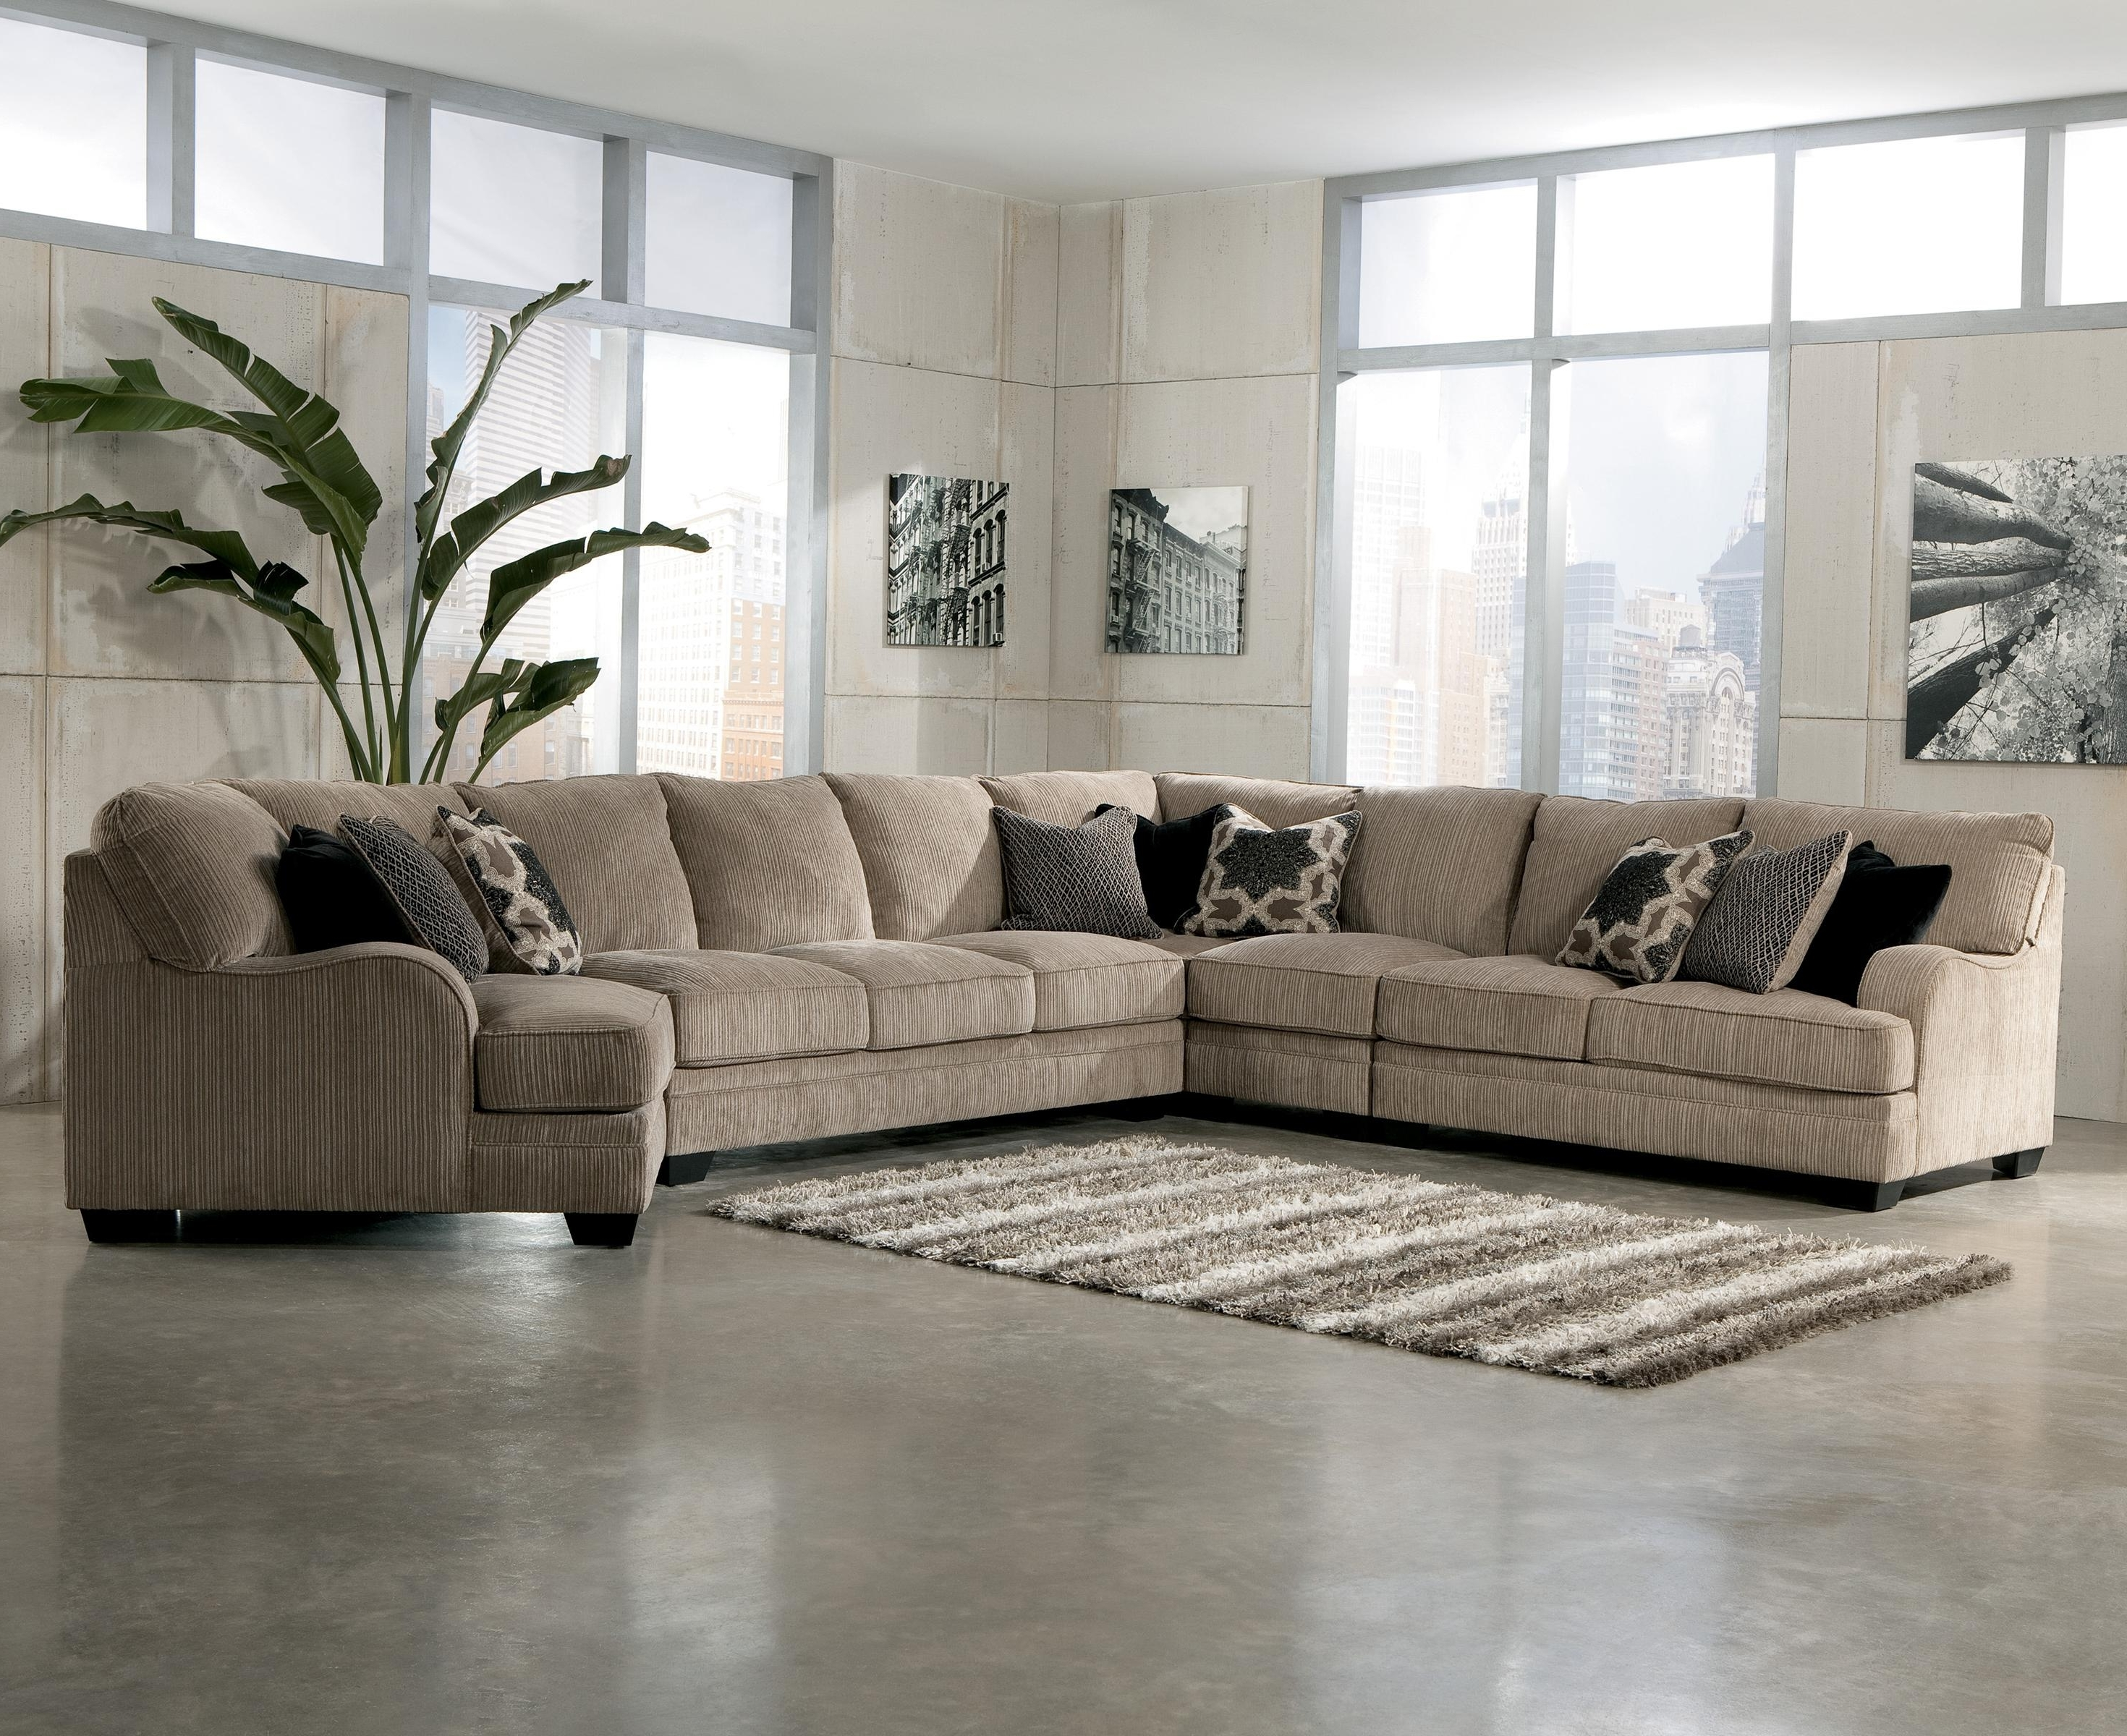 Signature Designashley Katisha – Platinum 5 Piece Sectional Intended For Trendy Peterborough Ontario Sectional Sofas (View 15 of 20)